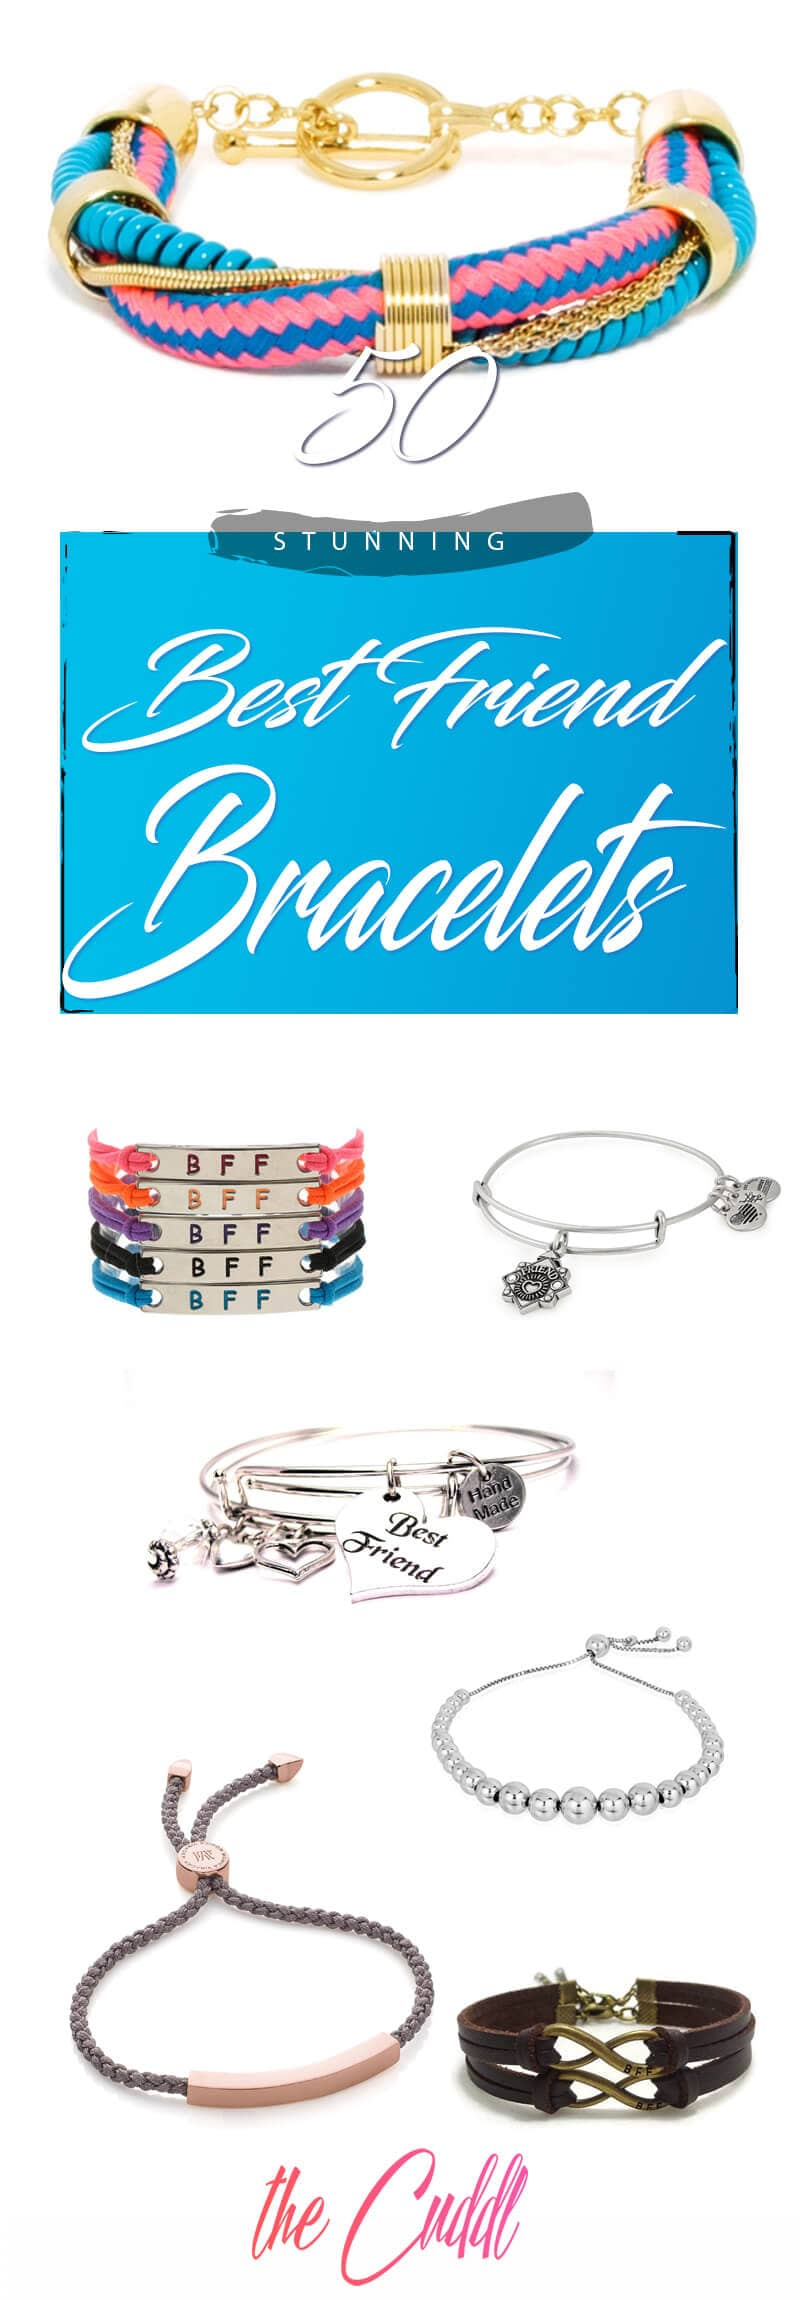 50 Stunning Best Friend Bracelets that will Steal Your Friend's Heart